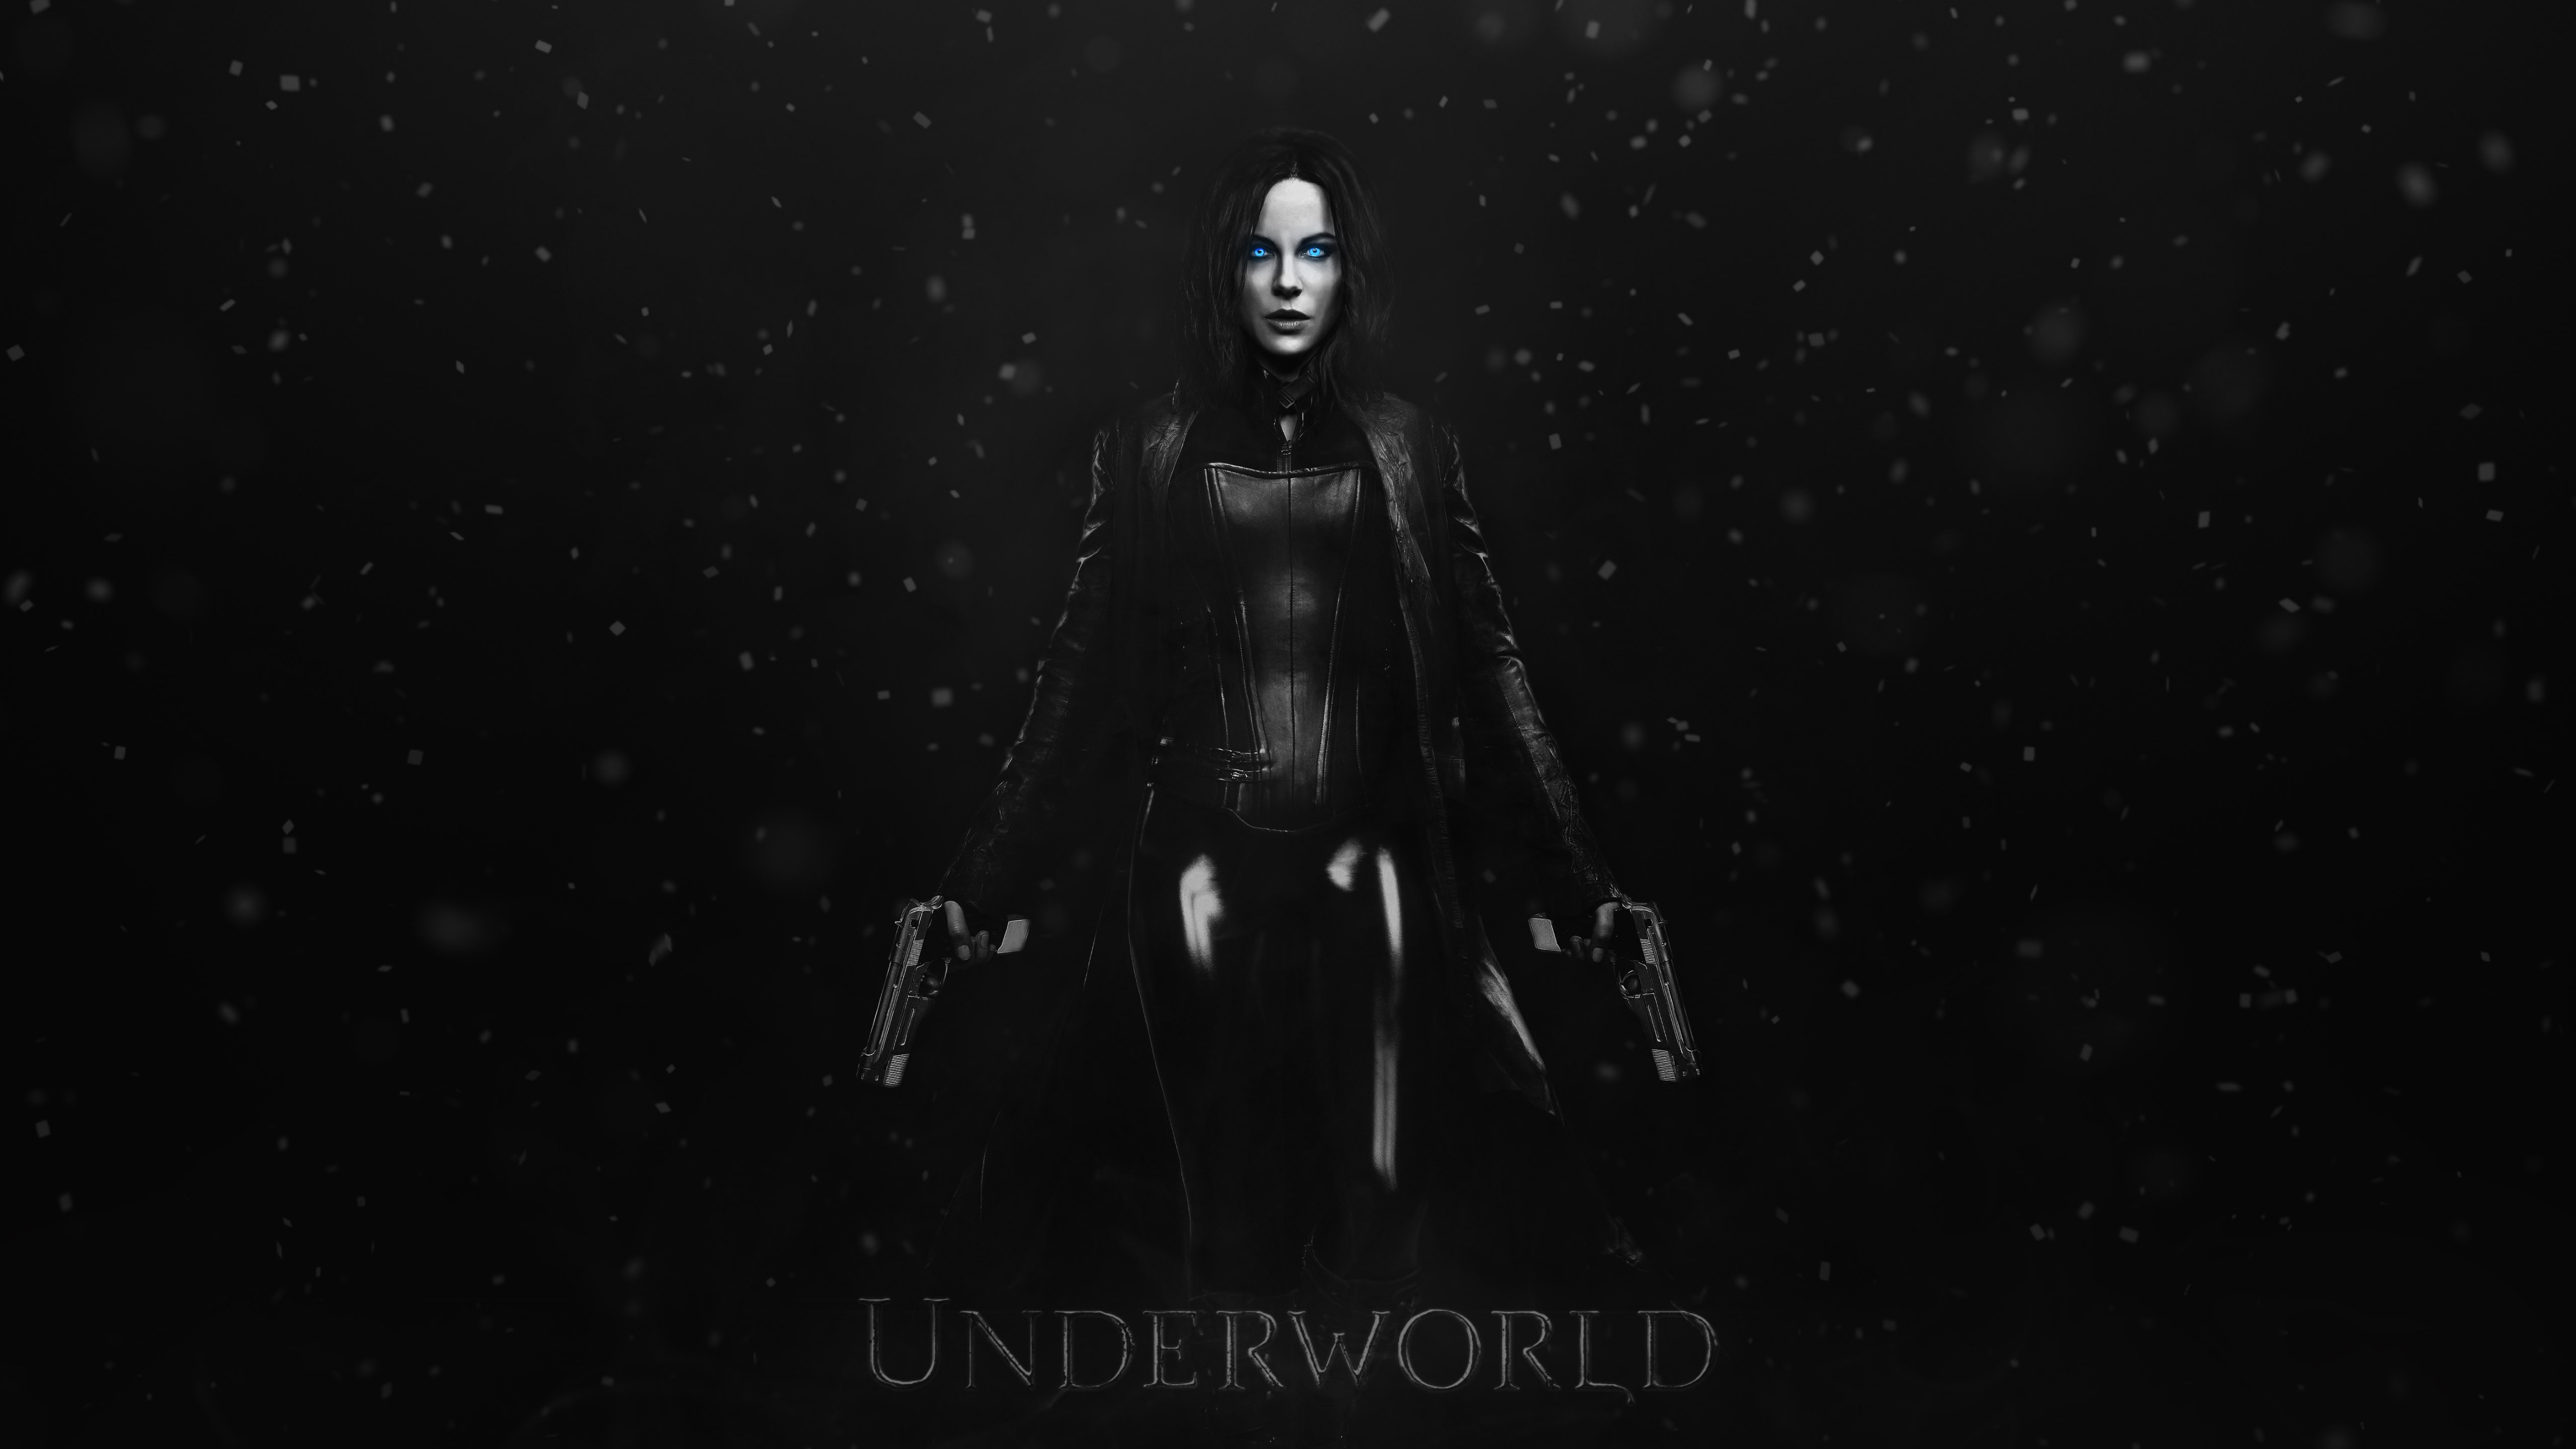 Selene From Underworld wallpaper 5120x2880